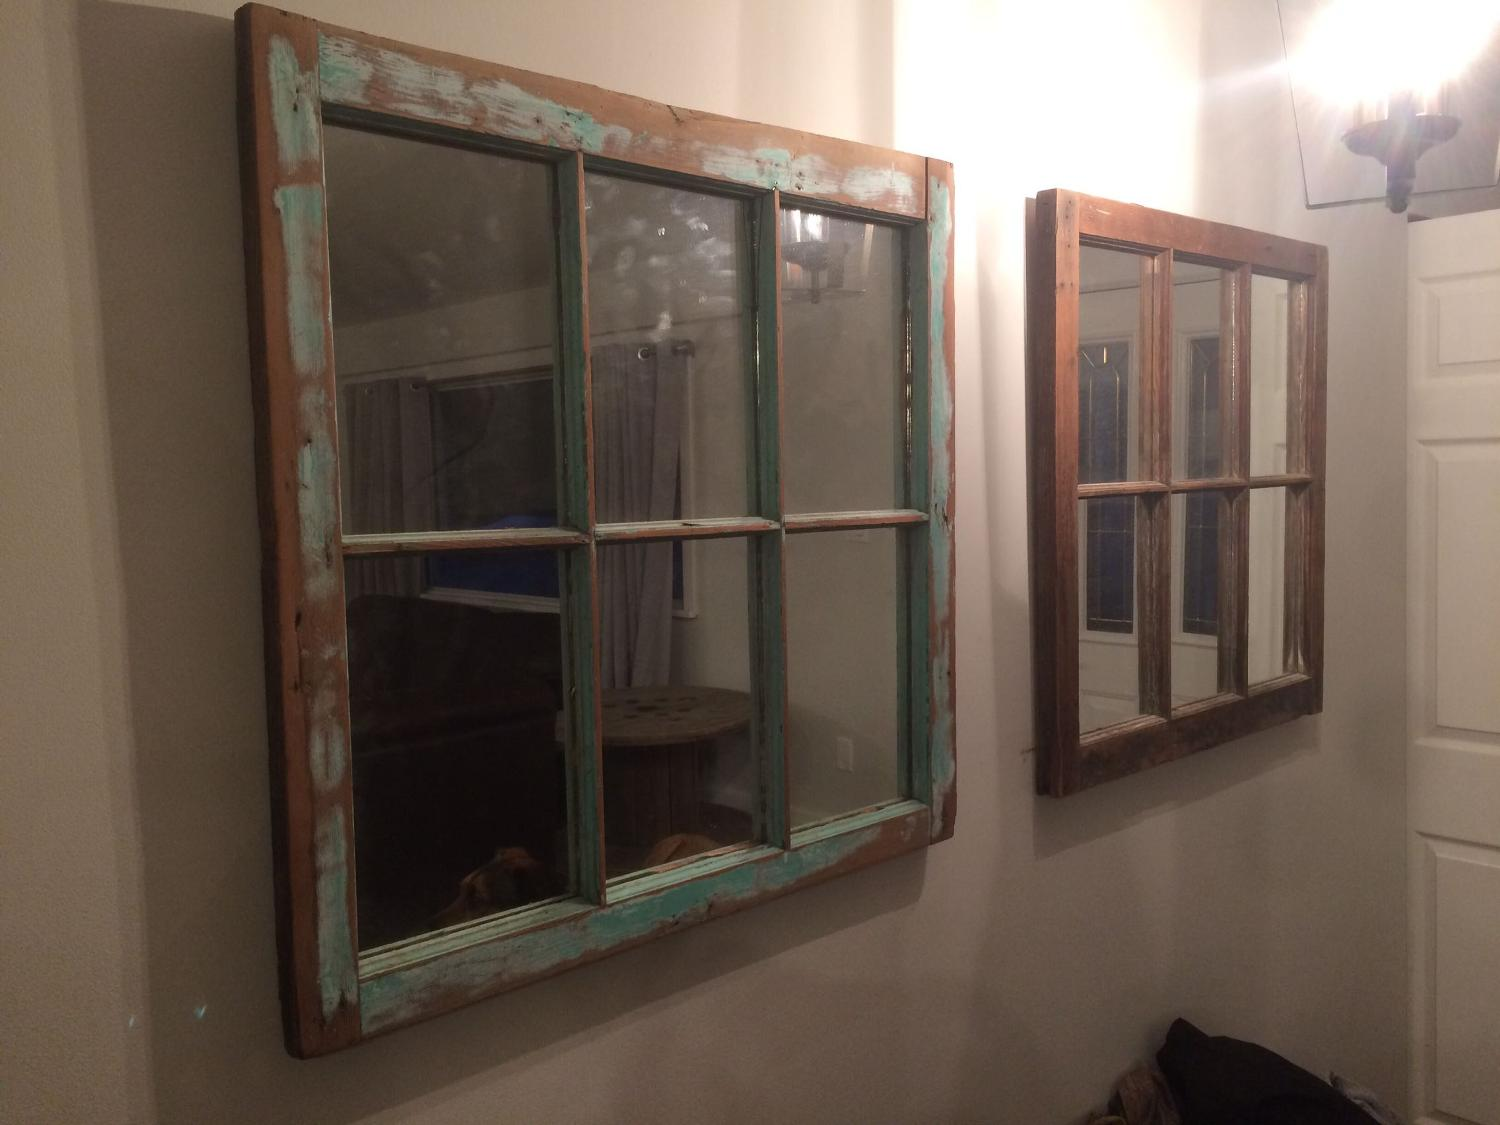 Best vintage window mirrors for sale in victoria british for Window mirrors for sale